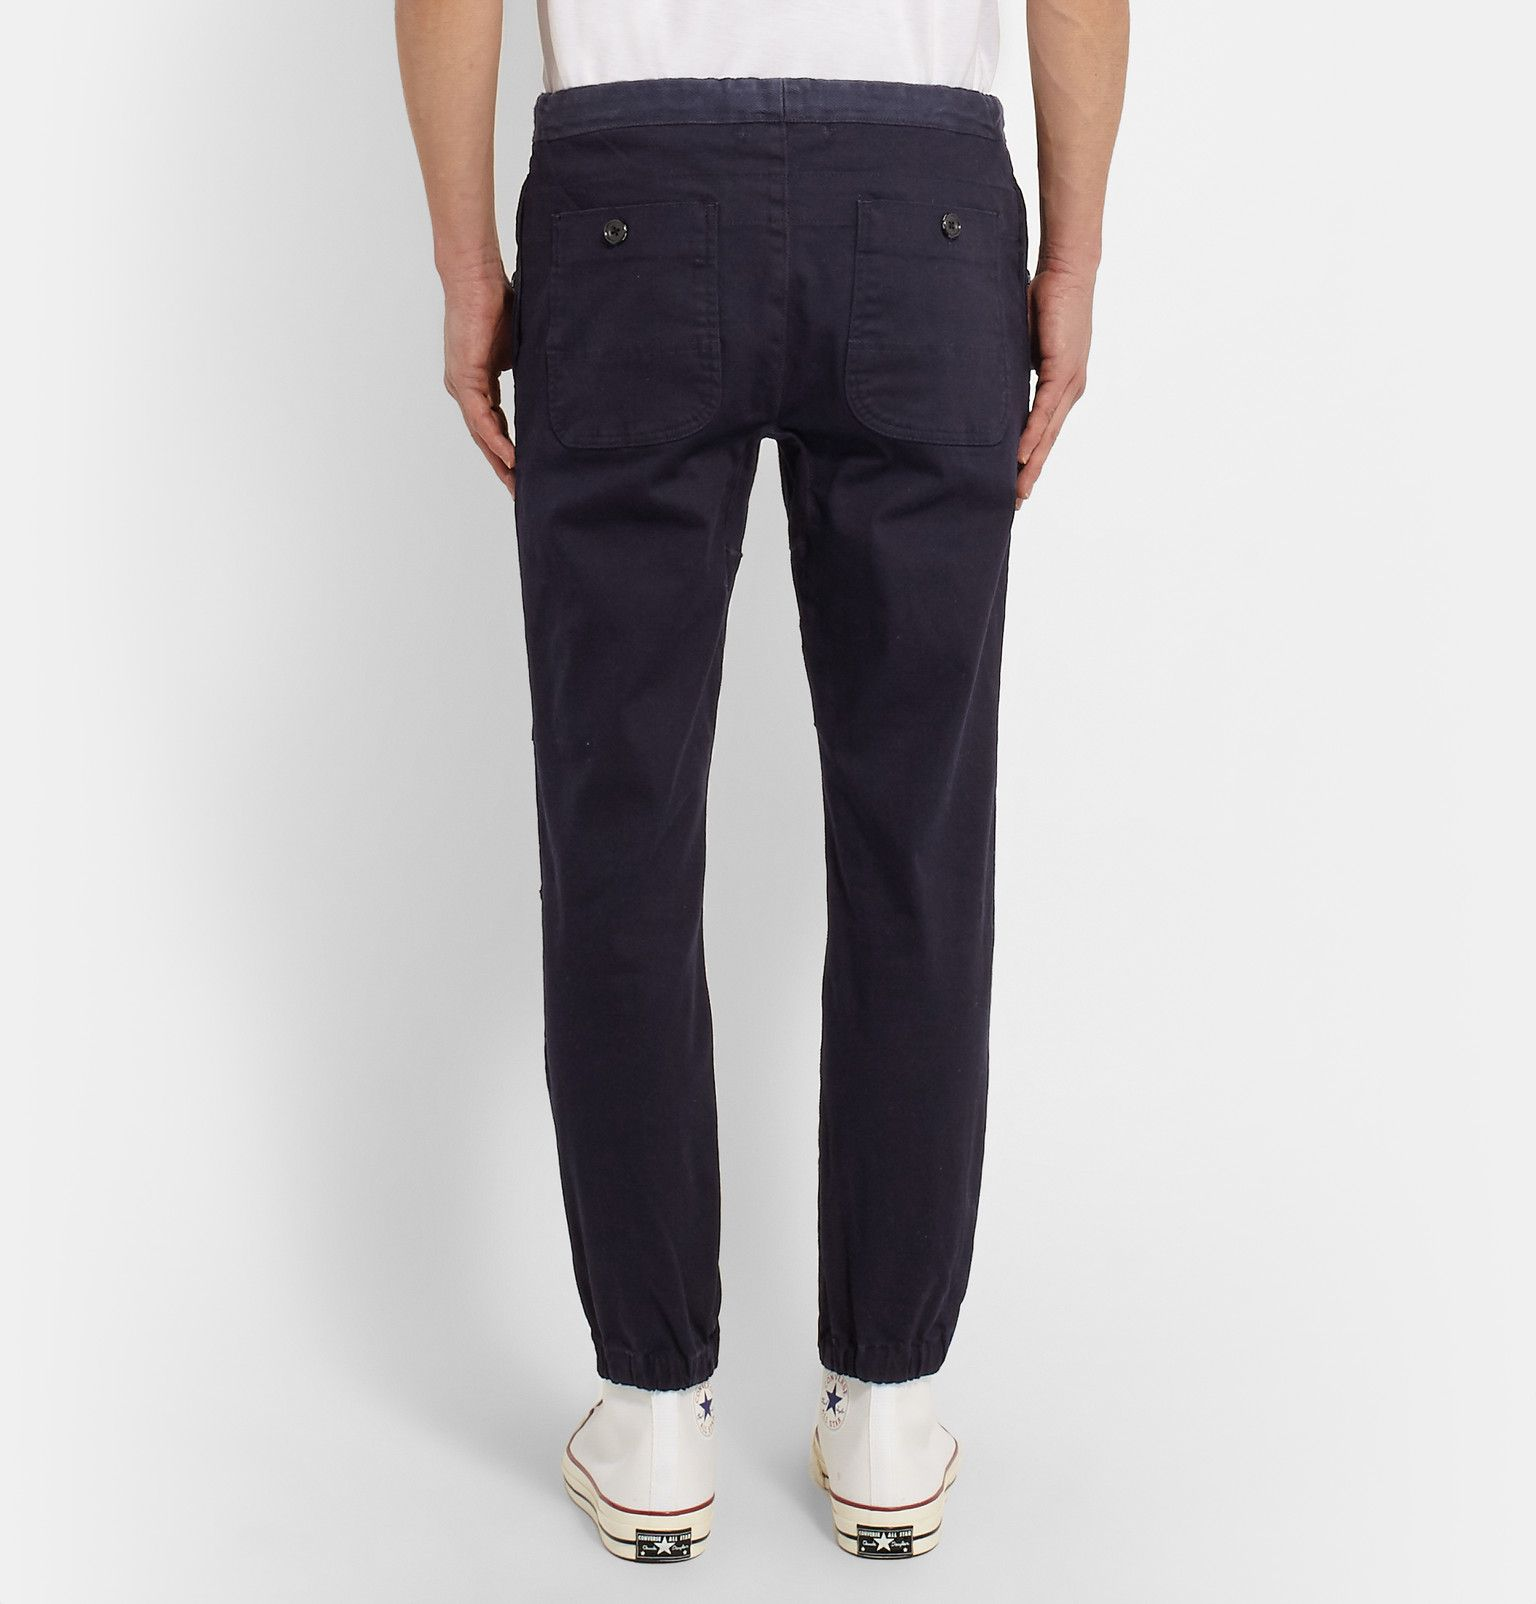 Finished with slightly cropped, cuffed legs, these Beams Plus trousers have a cool, contemporary shape. The waistband has a textured twill panel while white cotton drawstrings offset the deep navy shade. Try wearing them with an oversized T-shirt or hoodie for a comfortable casual look.